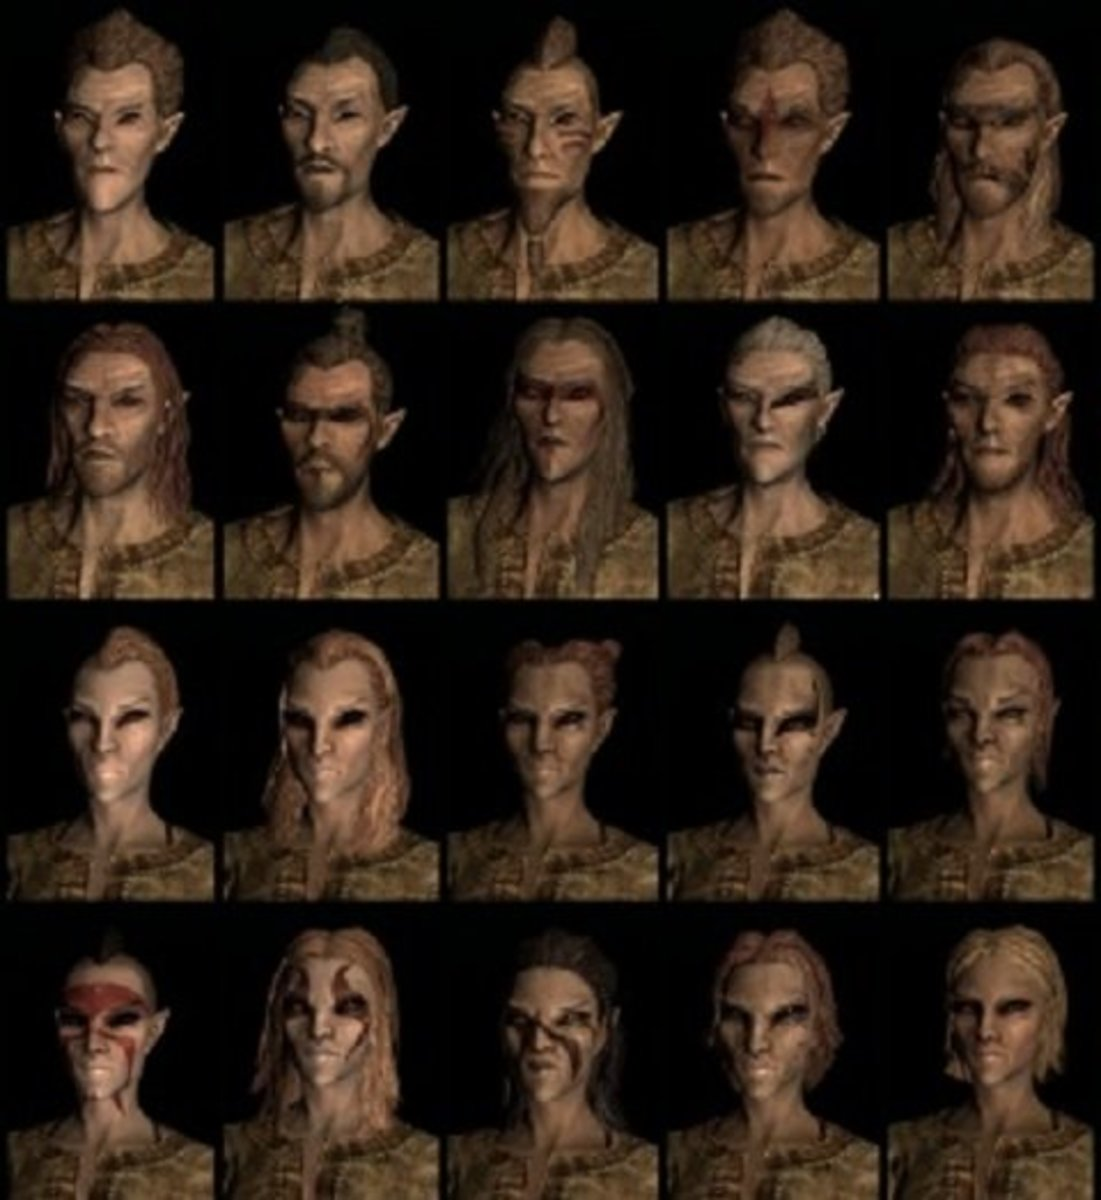 Compilation of Skyrim Wood Elf faces